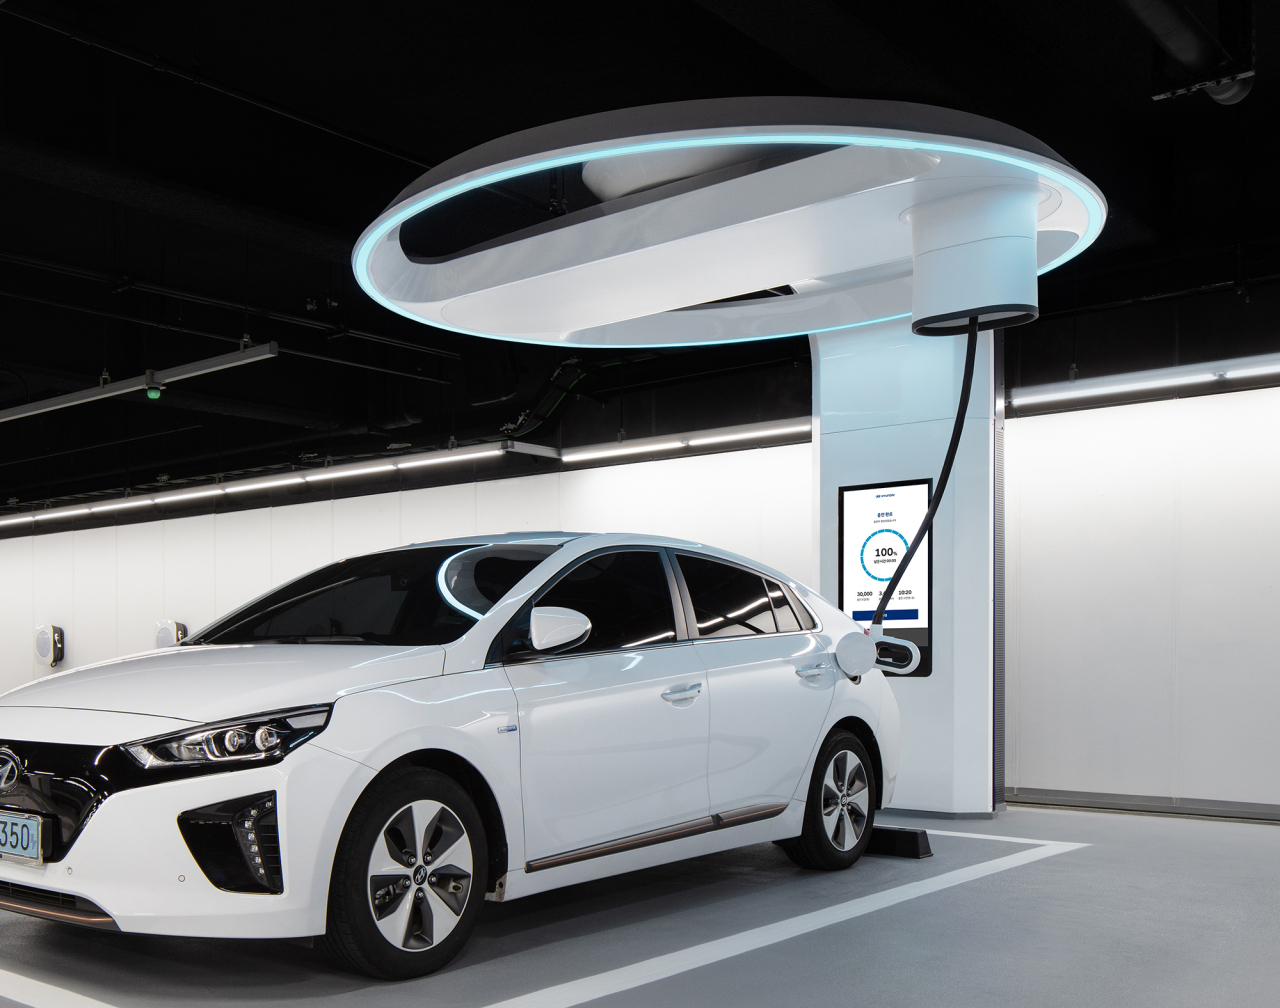 An electric vehicle is connected to Hi-Charger, an exclusive ultrahigh speed charger developed by Hyundai Motor. (Hyundai Motor)